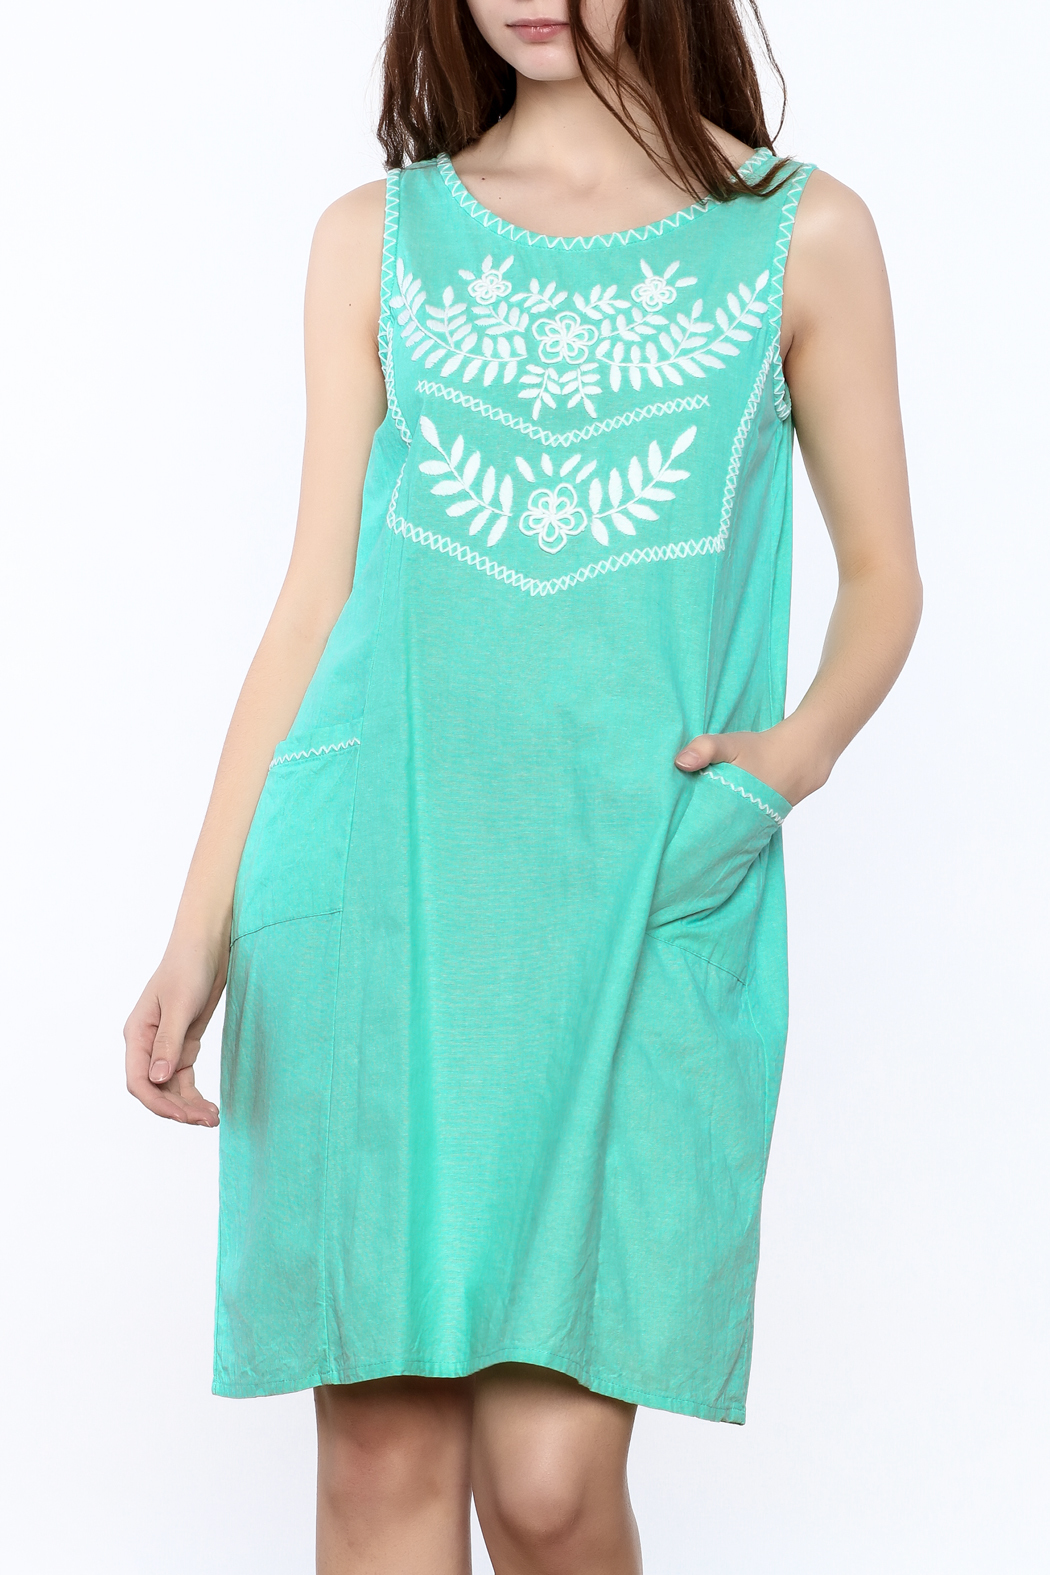 Abrazo Style Maria Embroidered Dress - Main Image